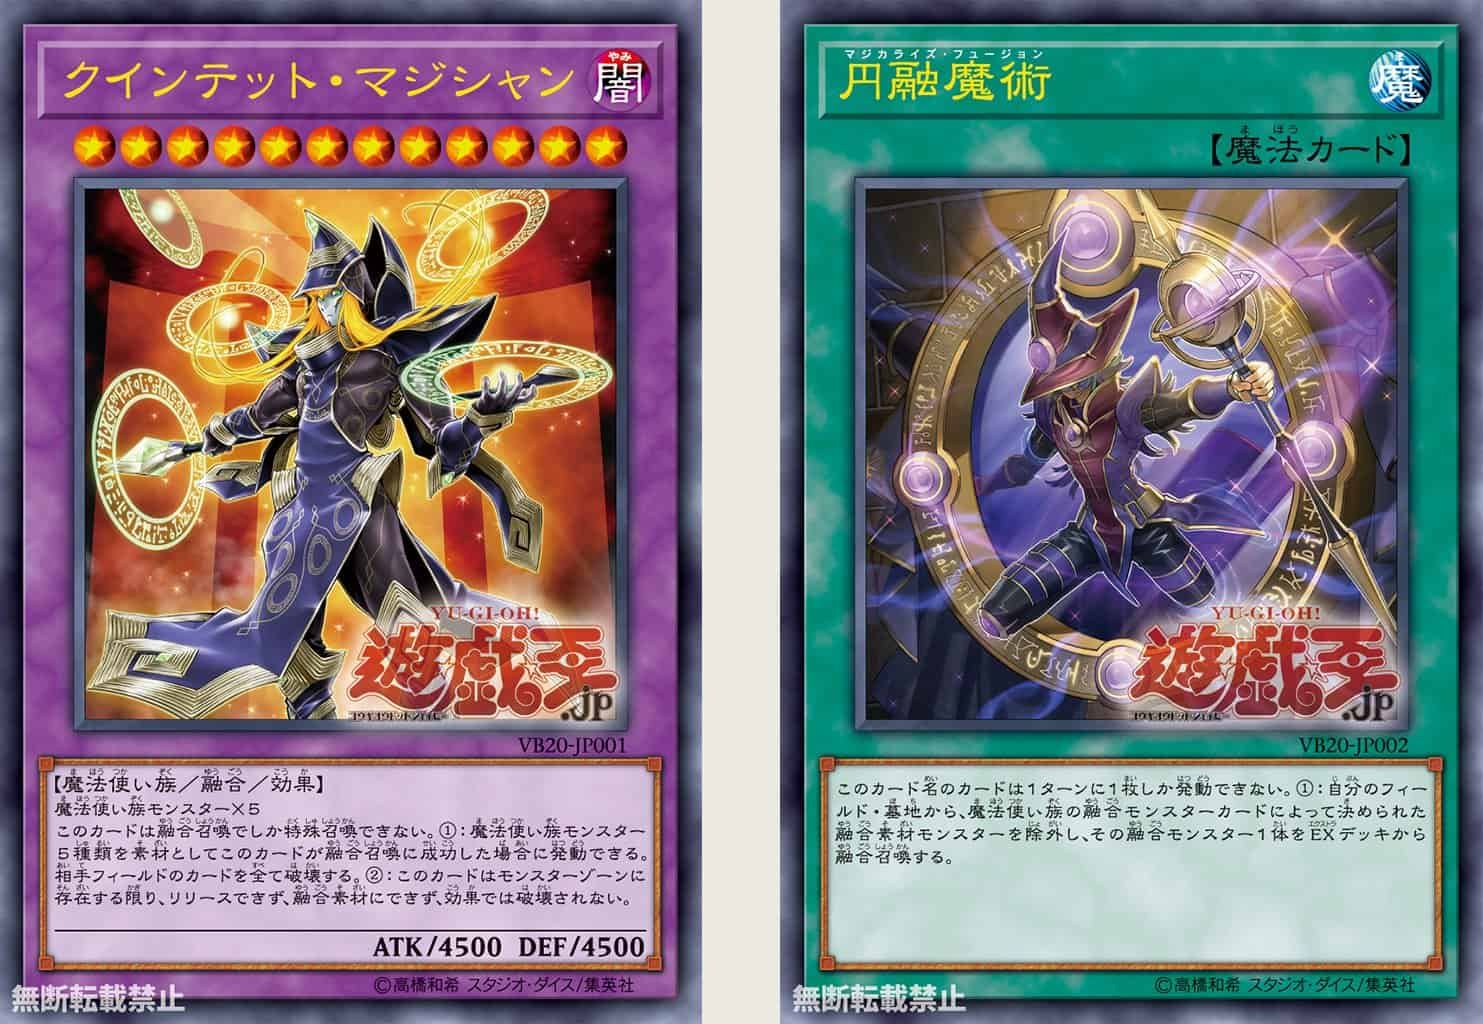 The Organization | [OCG] The Valuable Book 20 Promos - photo#10